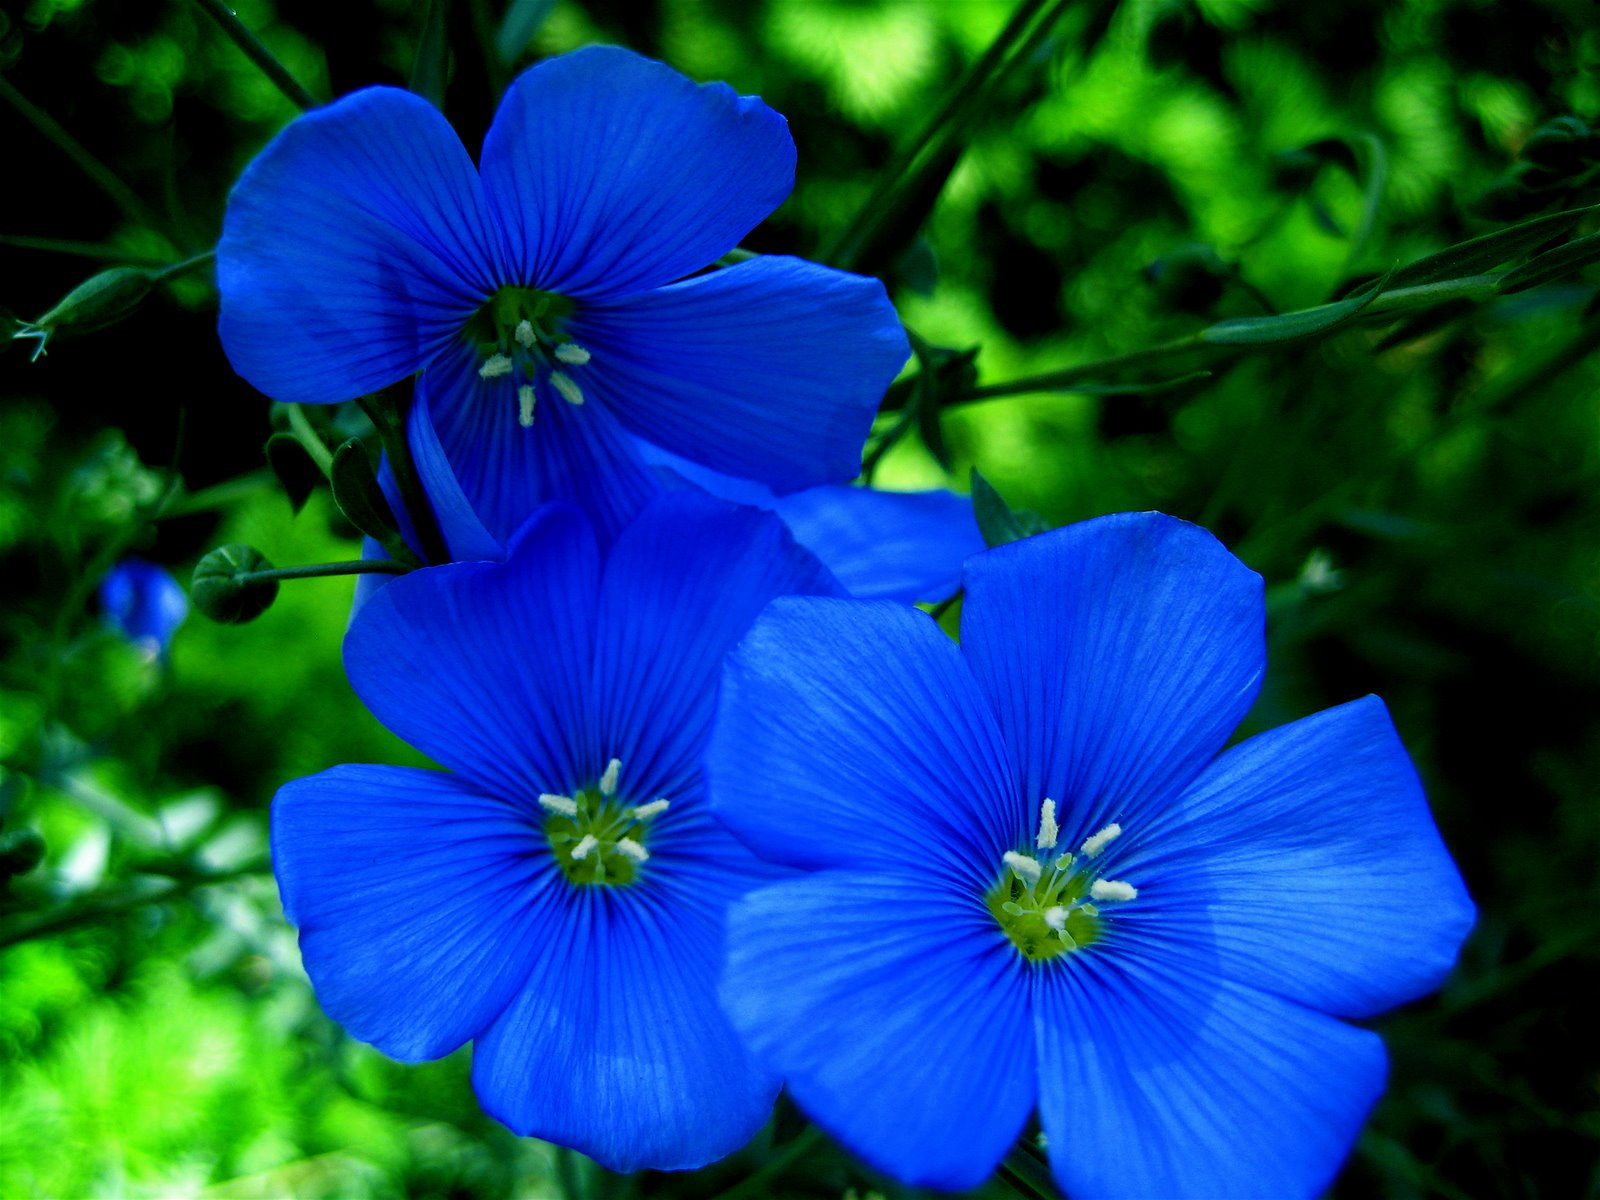 Blue Flowers Garden 10 Free Hd Wallpaper